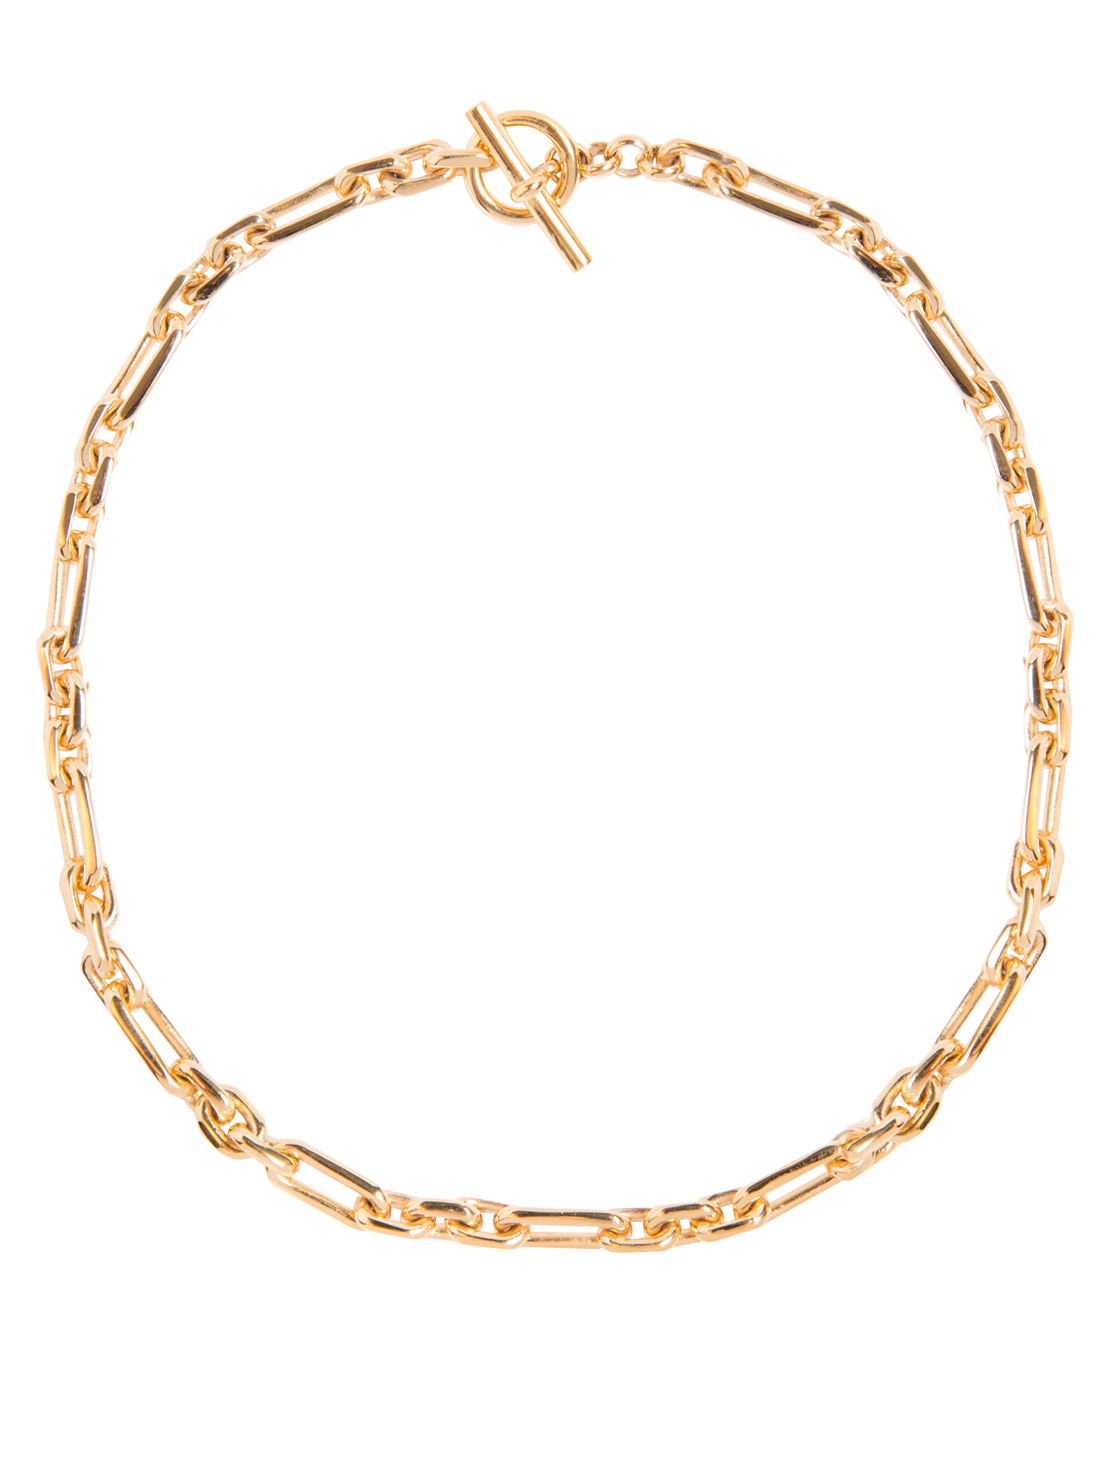 0d27f2aae56 Fine Gold Watch Chain Necklace - Tilly Sveaas Jewellery